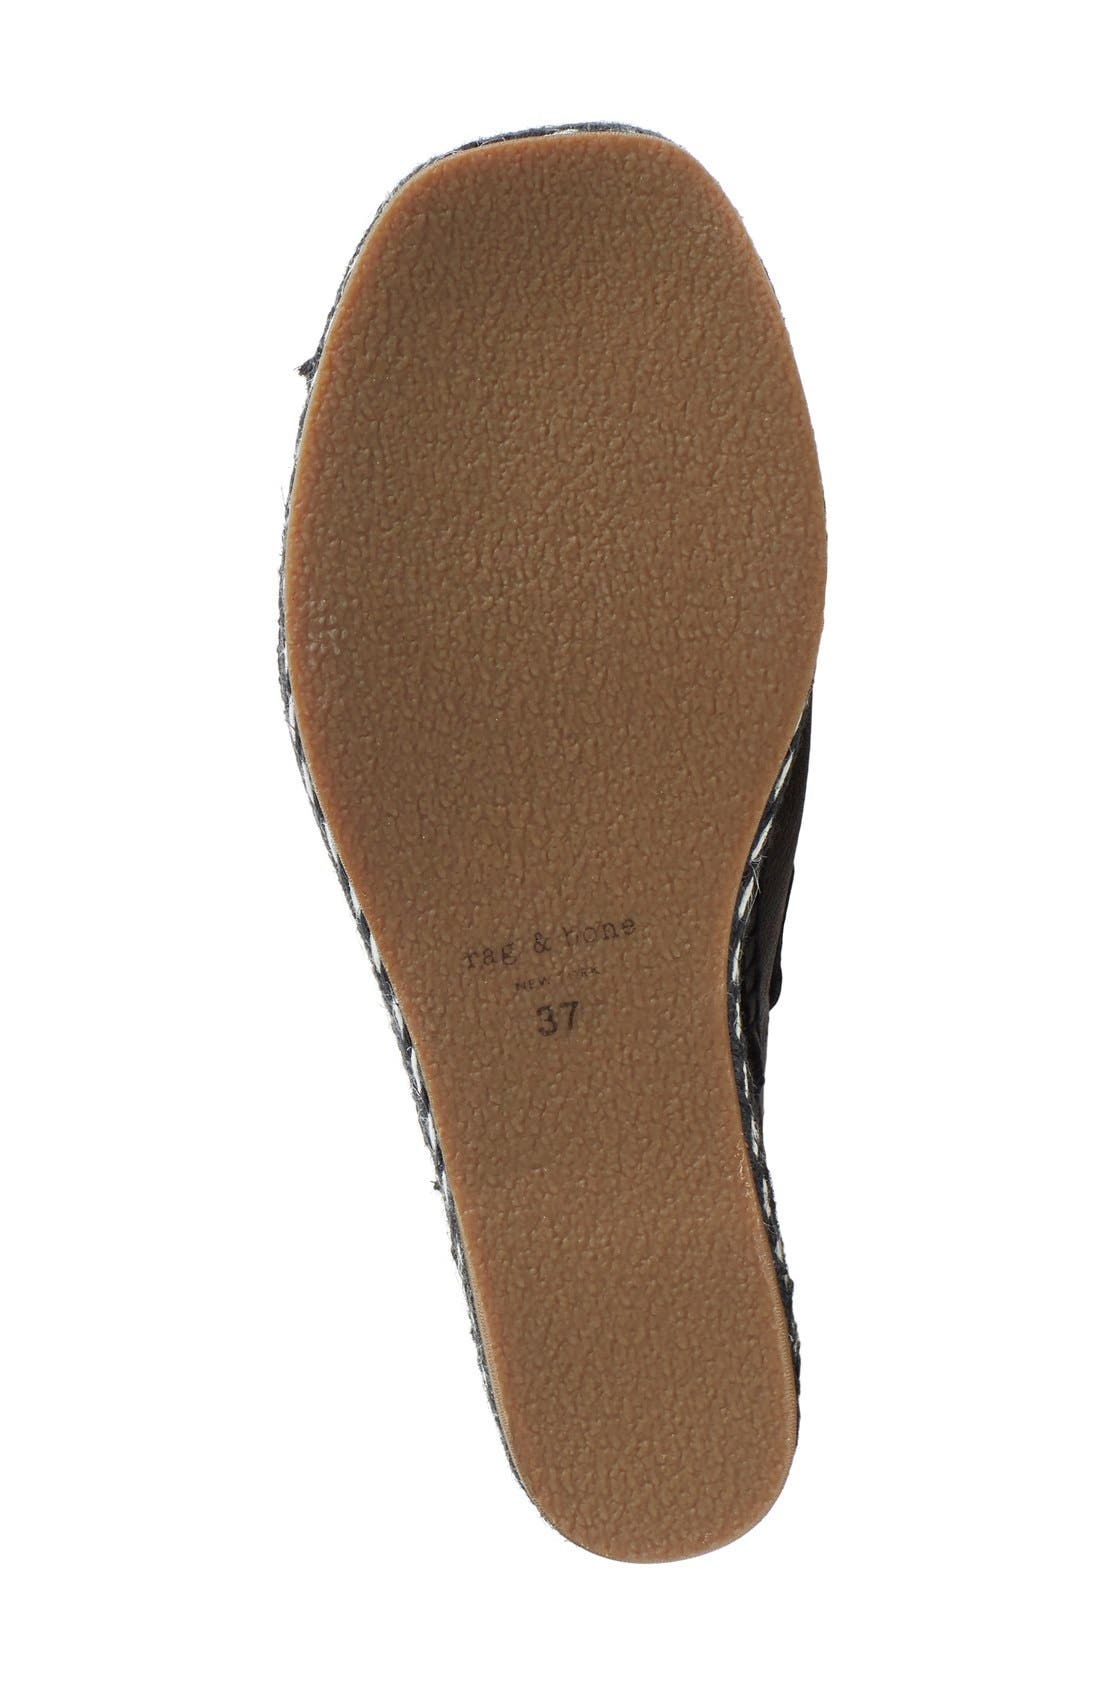 'Sayre II' Espadrille Wedge Sandal,                             Alternate thumbnail 4, color,                             Black